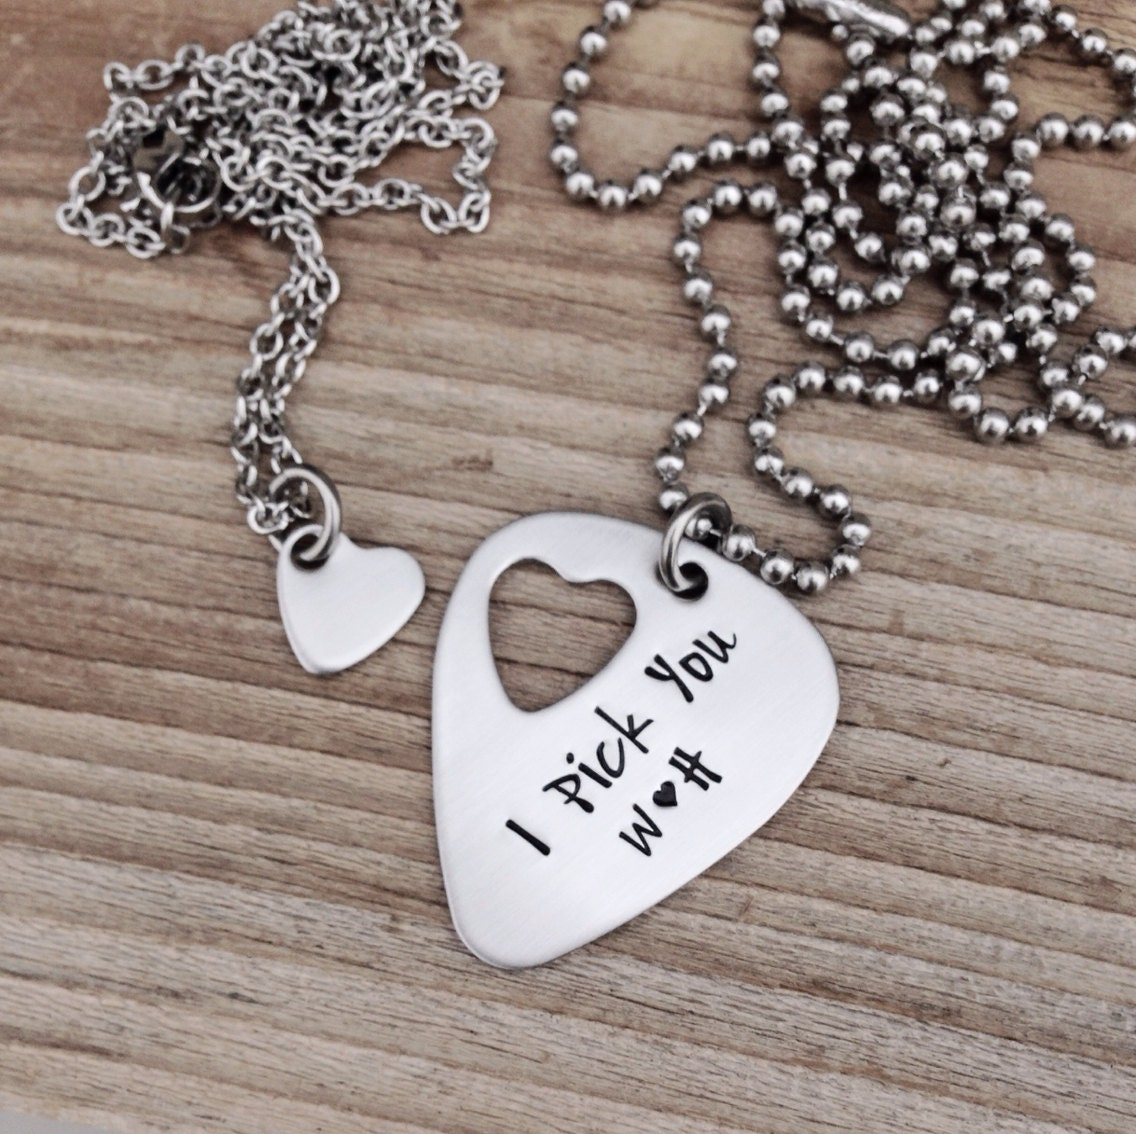 Design Your Own Custom Bangle Charm Bracelet Pick Your Charms: Custom Hand Stamped Guitar Pick Necklace With Cut Out Heart